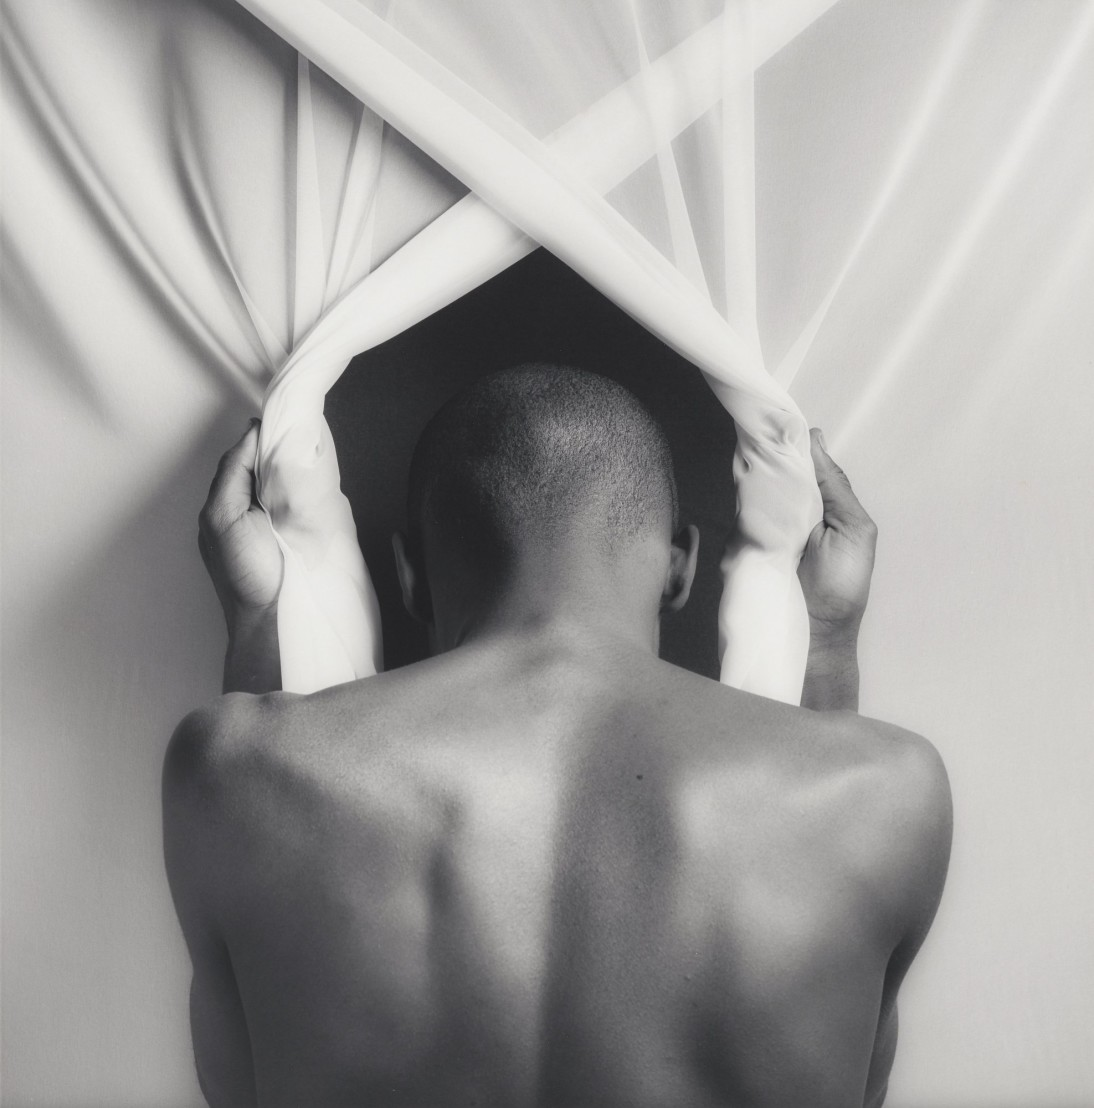 robert-mapplethorpe-retrospective-lacma-getty-4